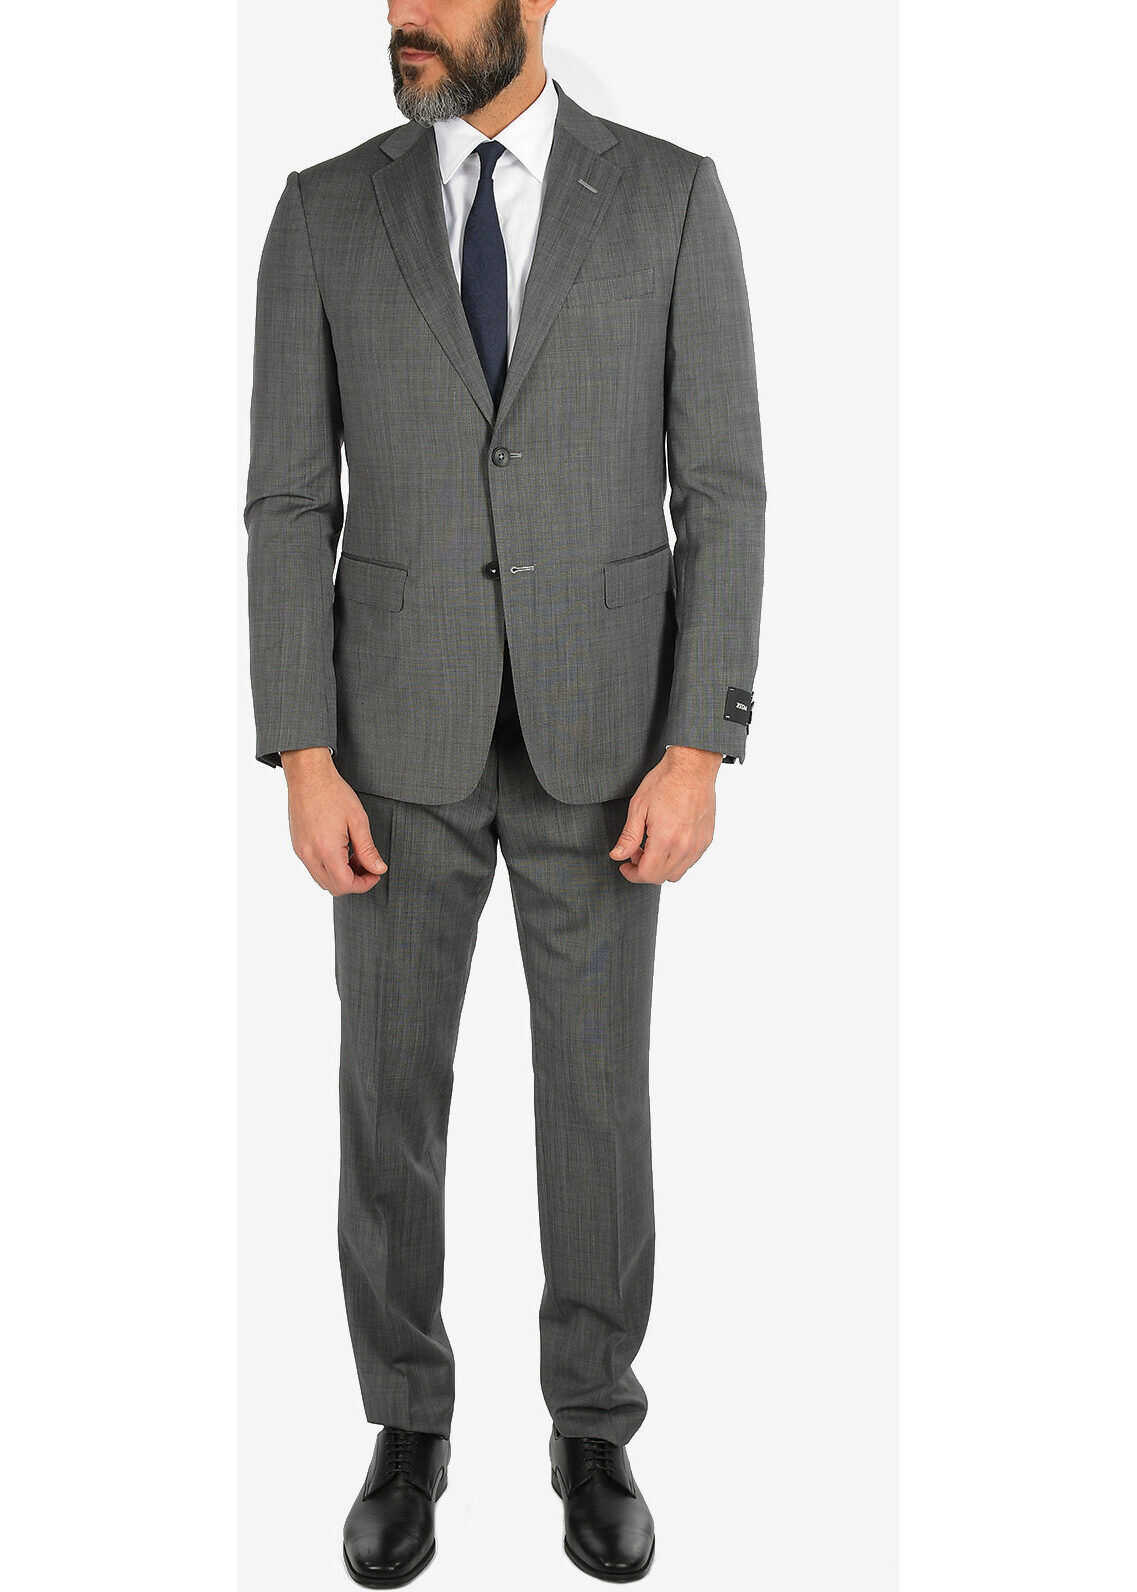 Ermenegildo Zegna ZZEGNA Pin Point 2 Button Suit with Jetted Pocket GRAY imagine